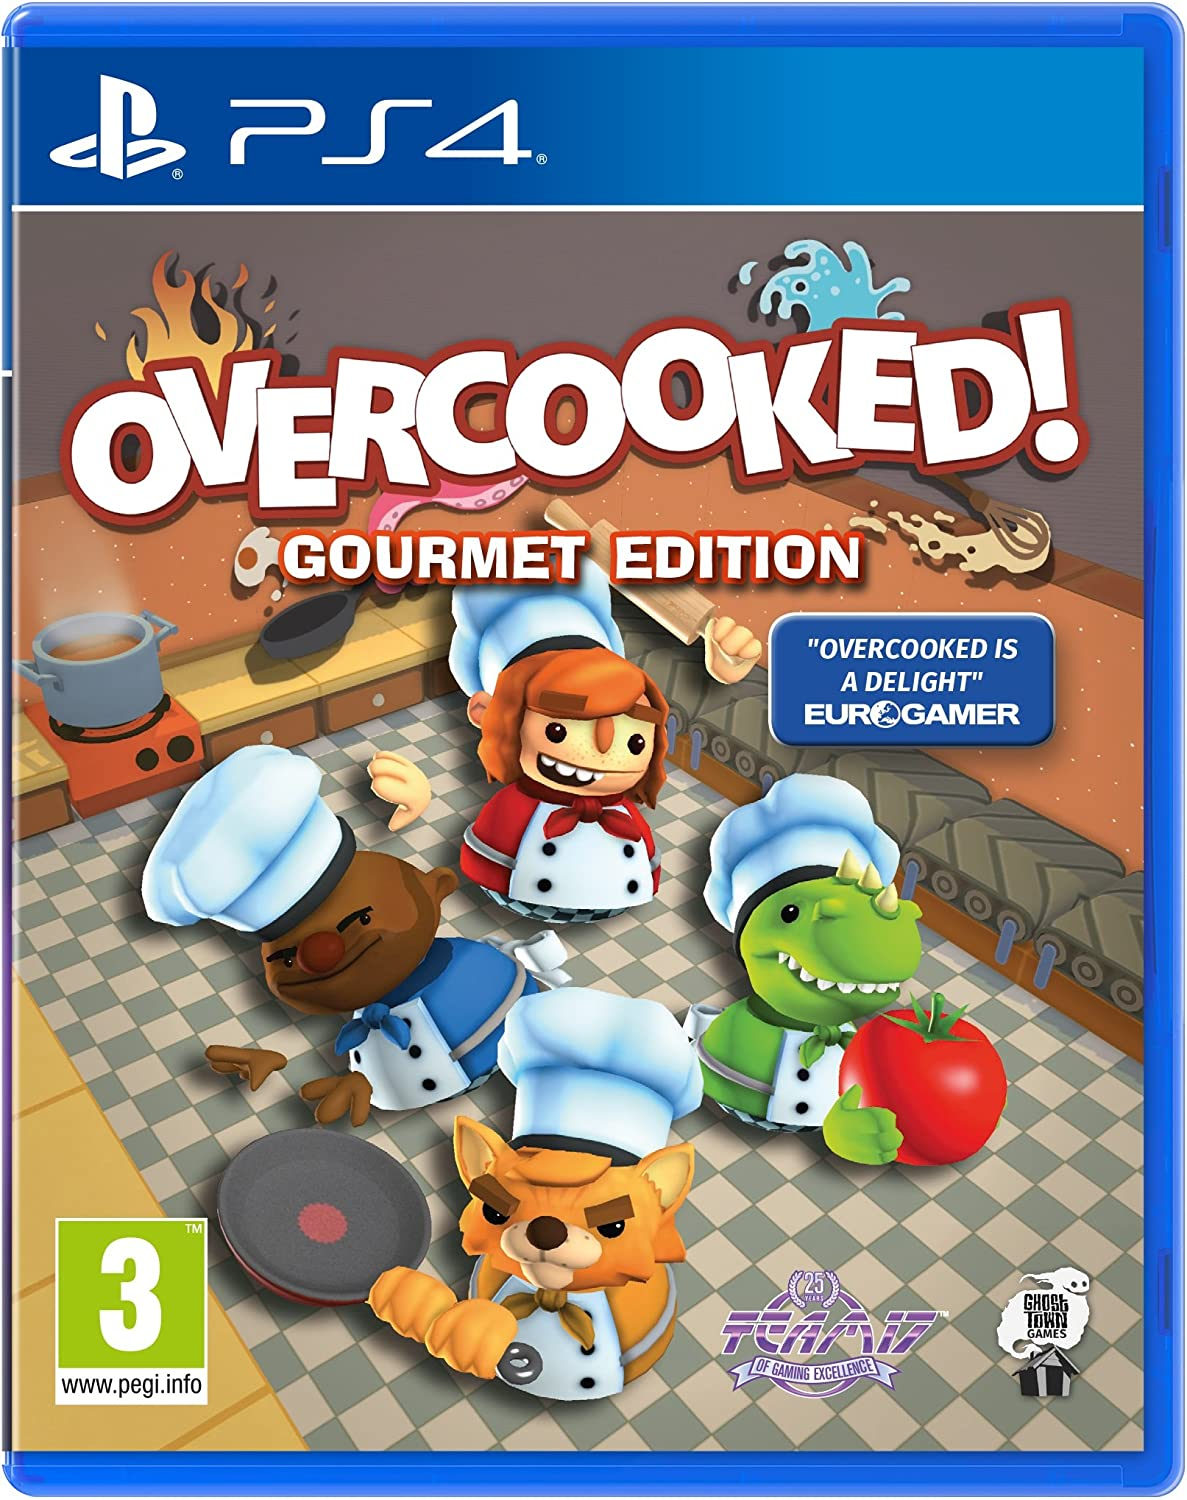 Overcooked - Gourmet Edition (Inc.DLC The Lost Morsel)